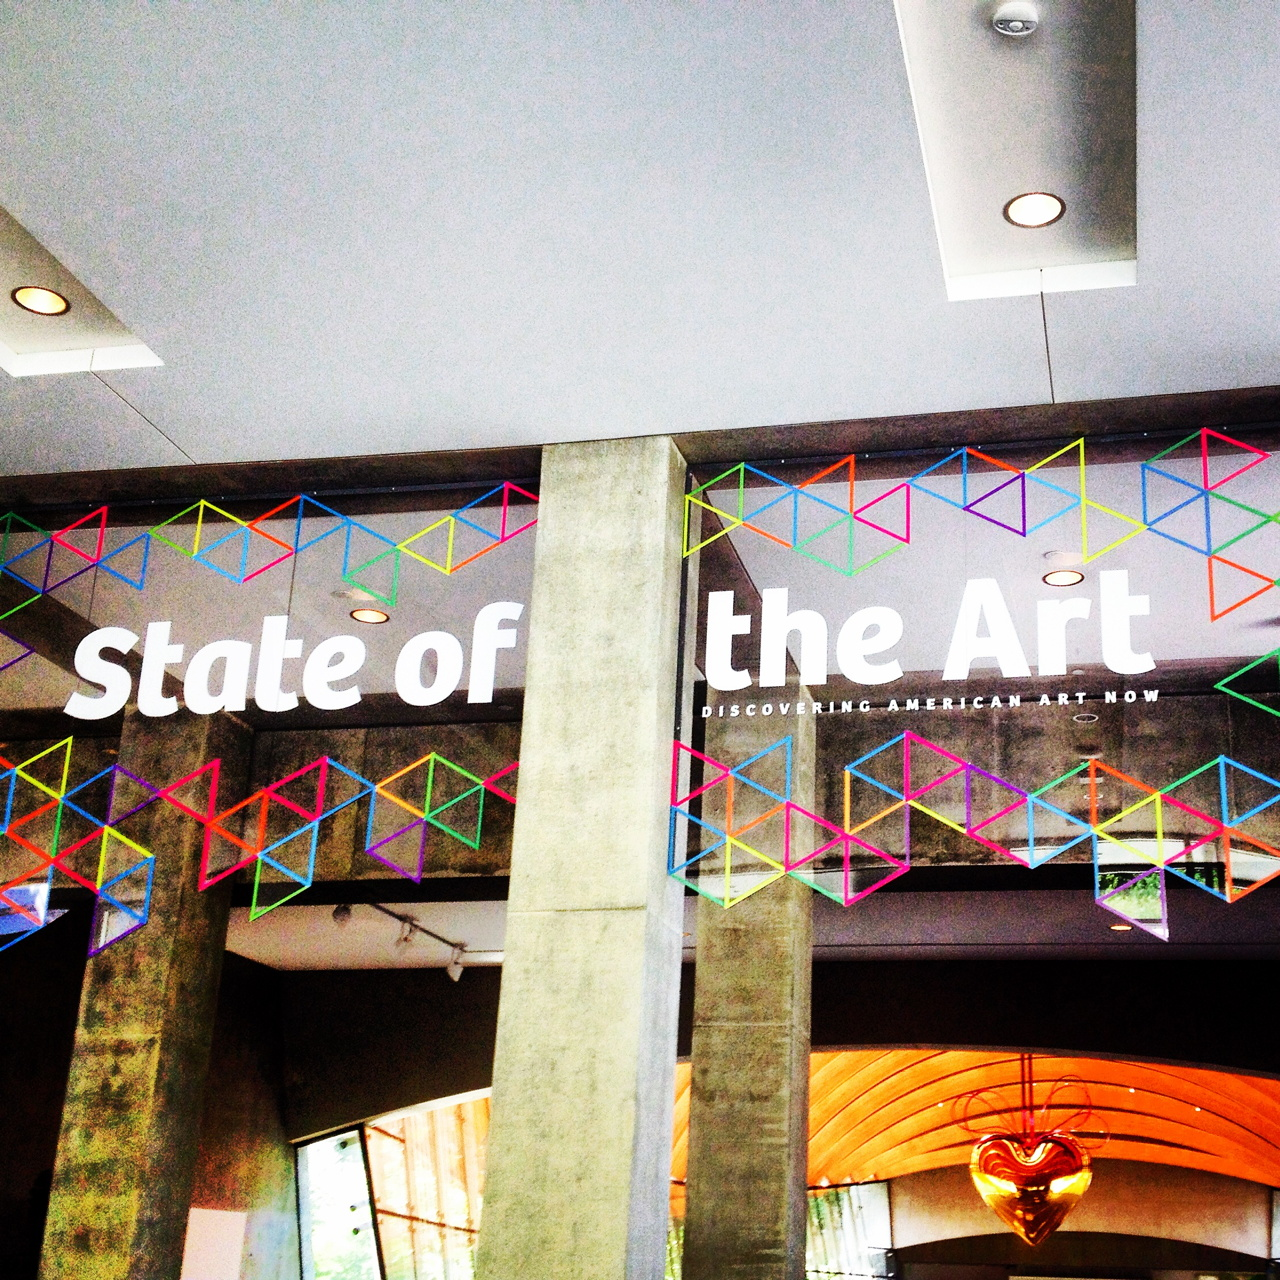 'State of the Art: Discovering American Art Now' at the Crystal Bridges Museum (all photos by the author for Hyperallergic unless otherwise noted)